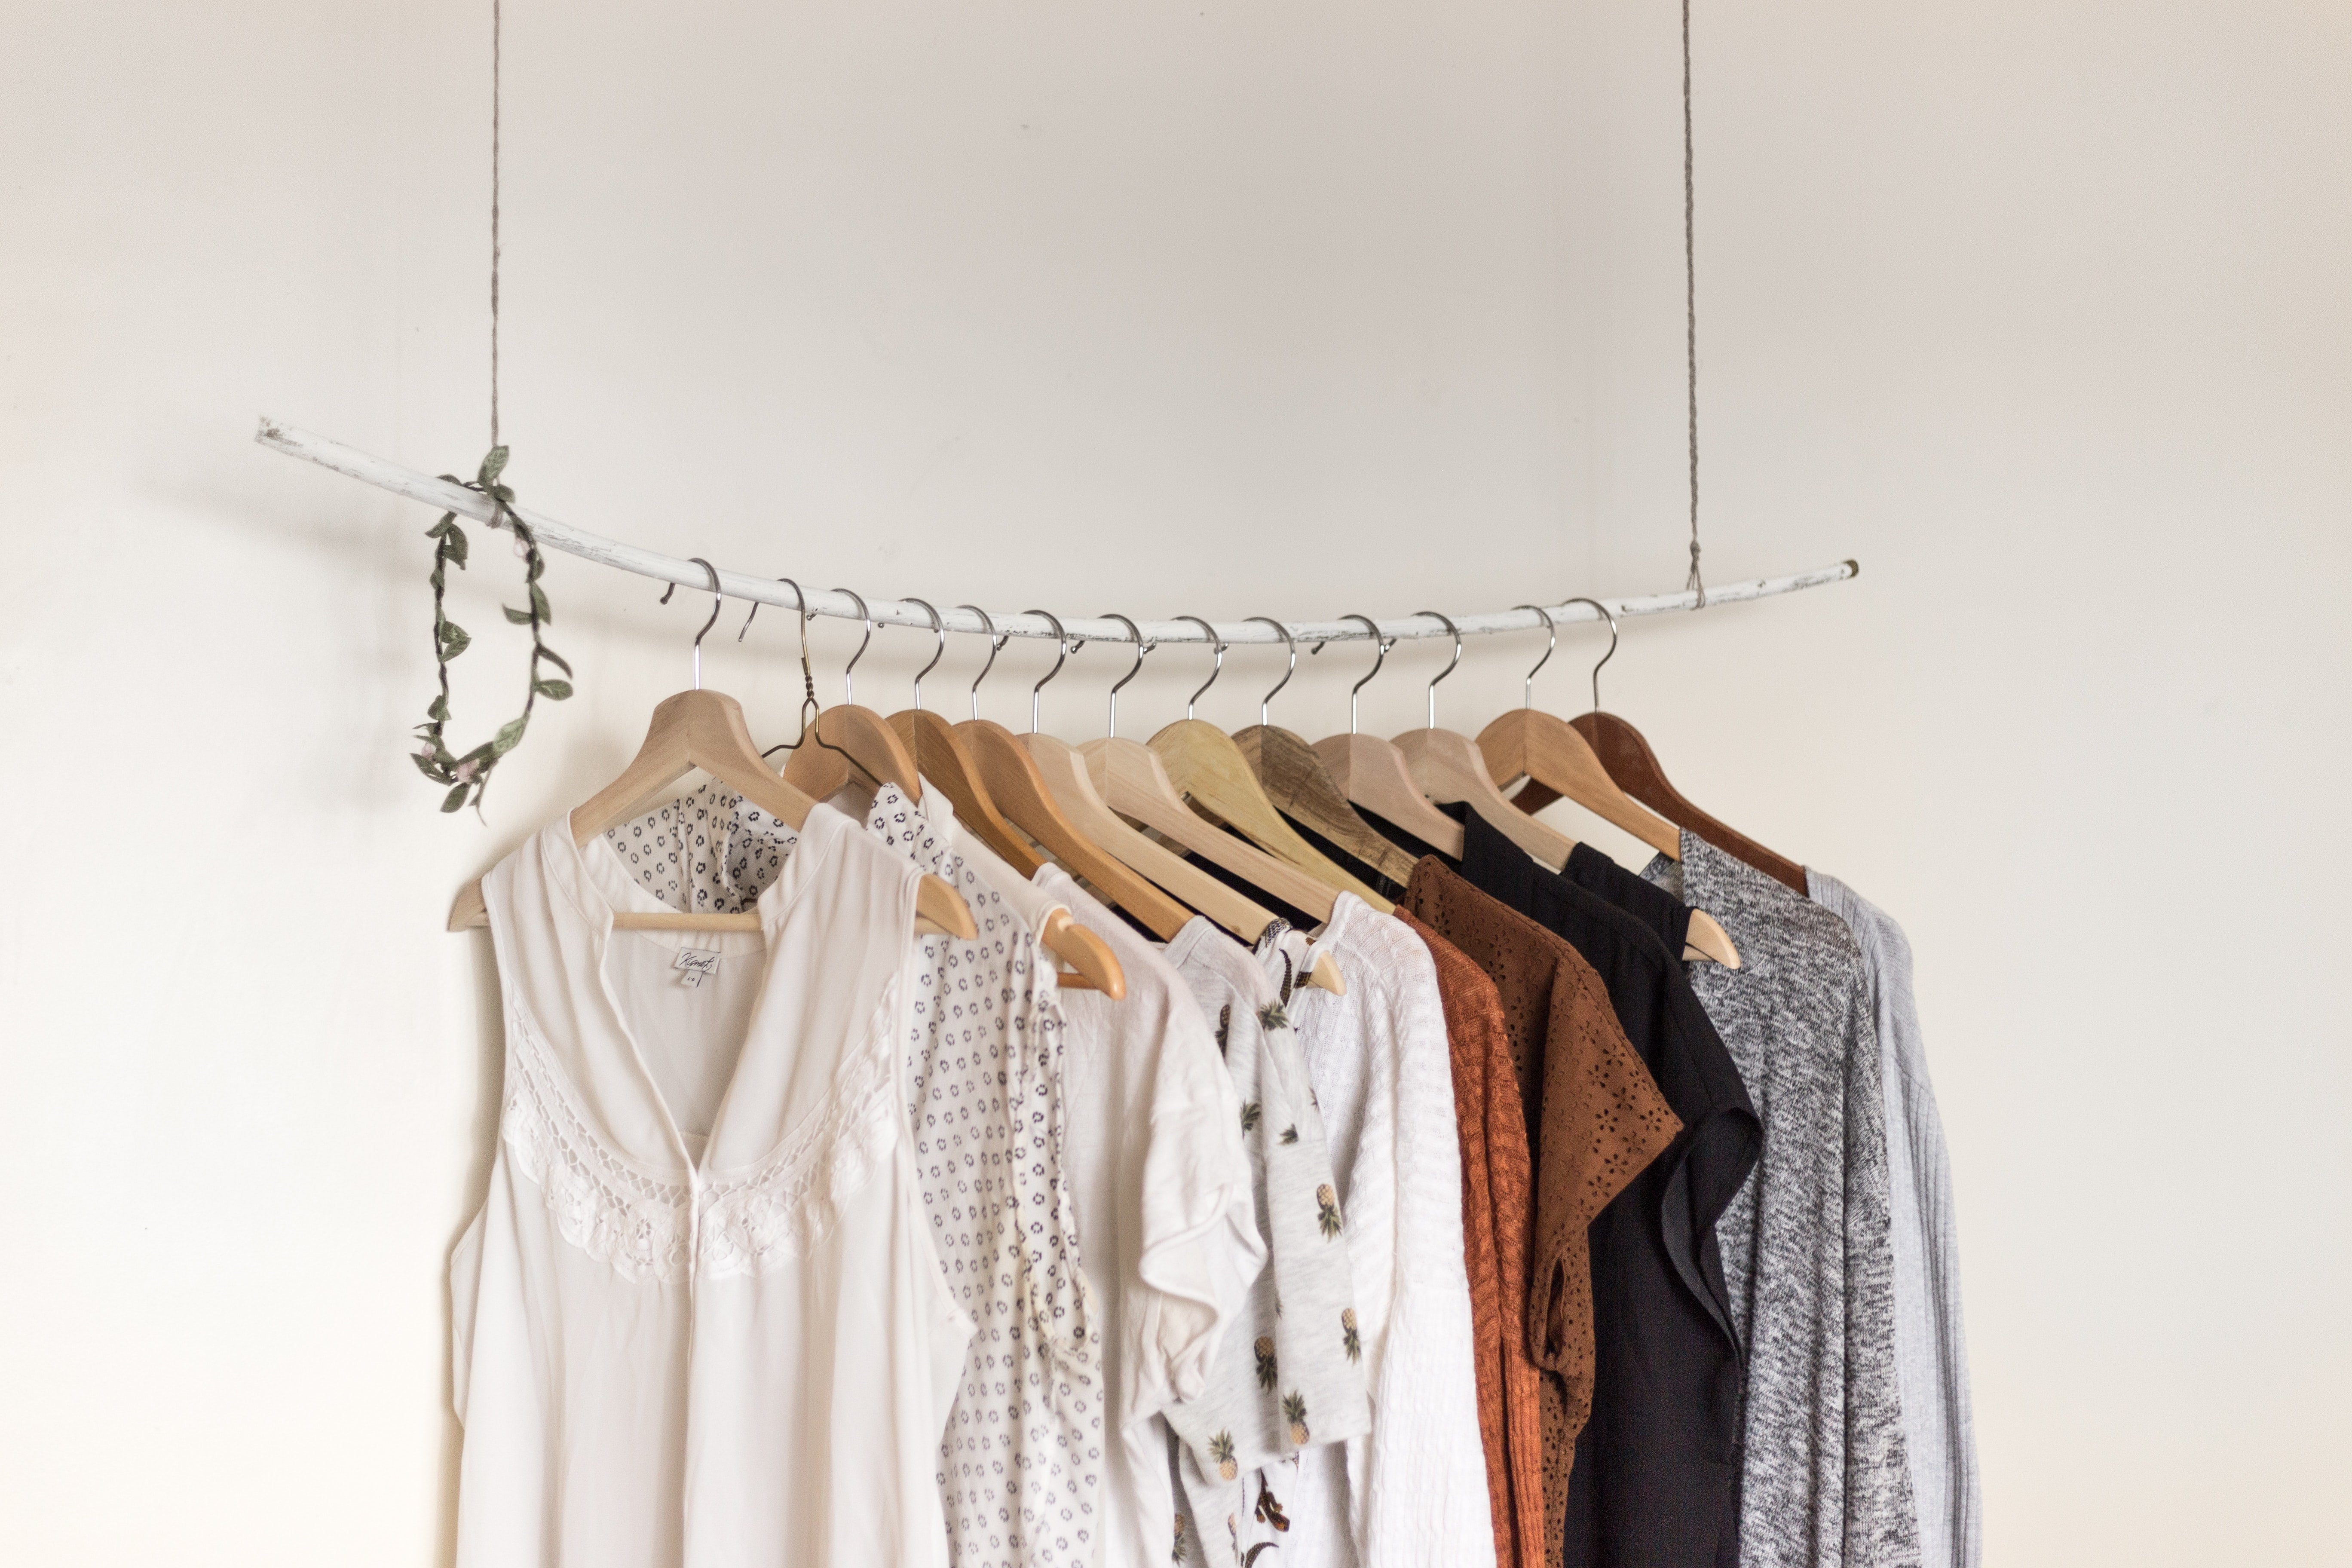 Capsule Wardrobe: A Guide for an Eco-Conscience Consumer